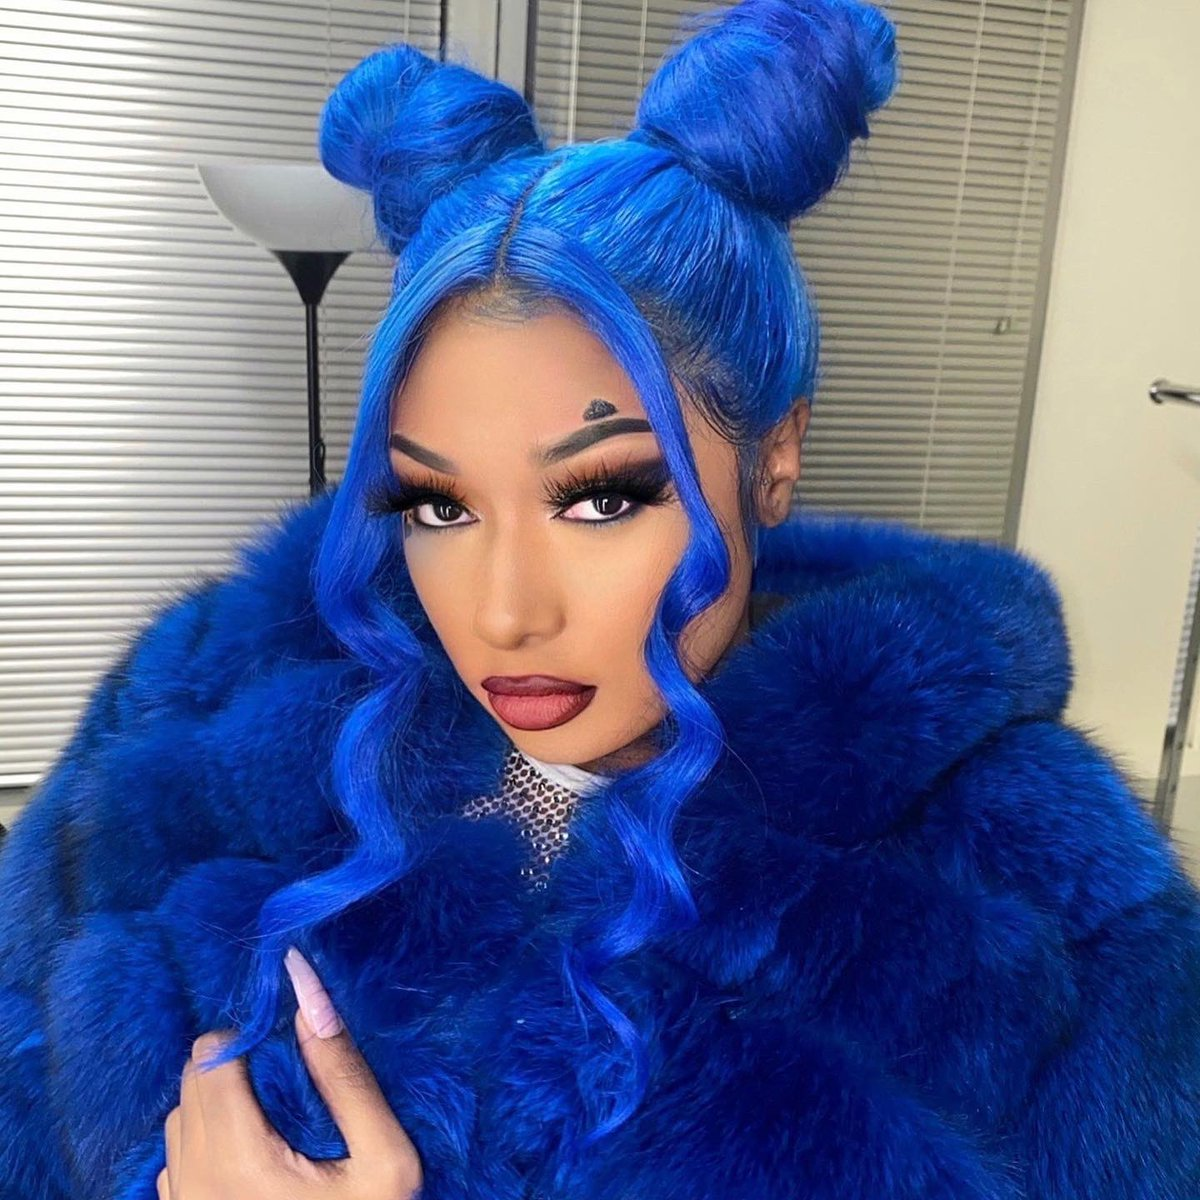 IT'S A REAL BITCH HOLIDAY 💙💙💙💙 2/15 HAPPY BIRTHDAY TO ME